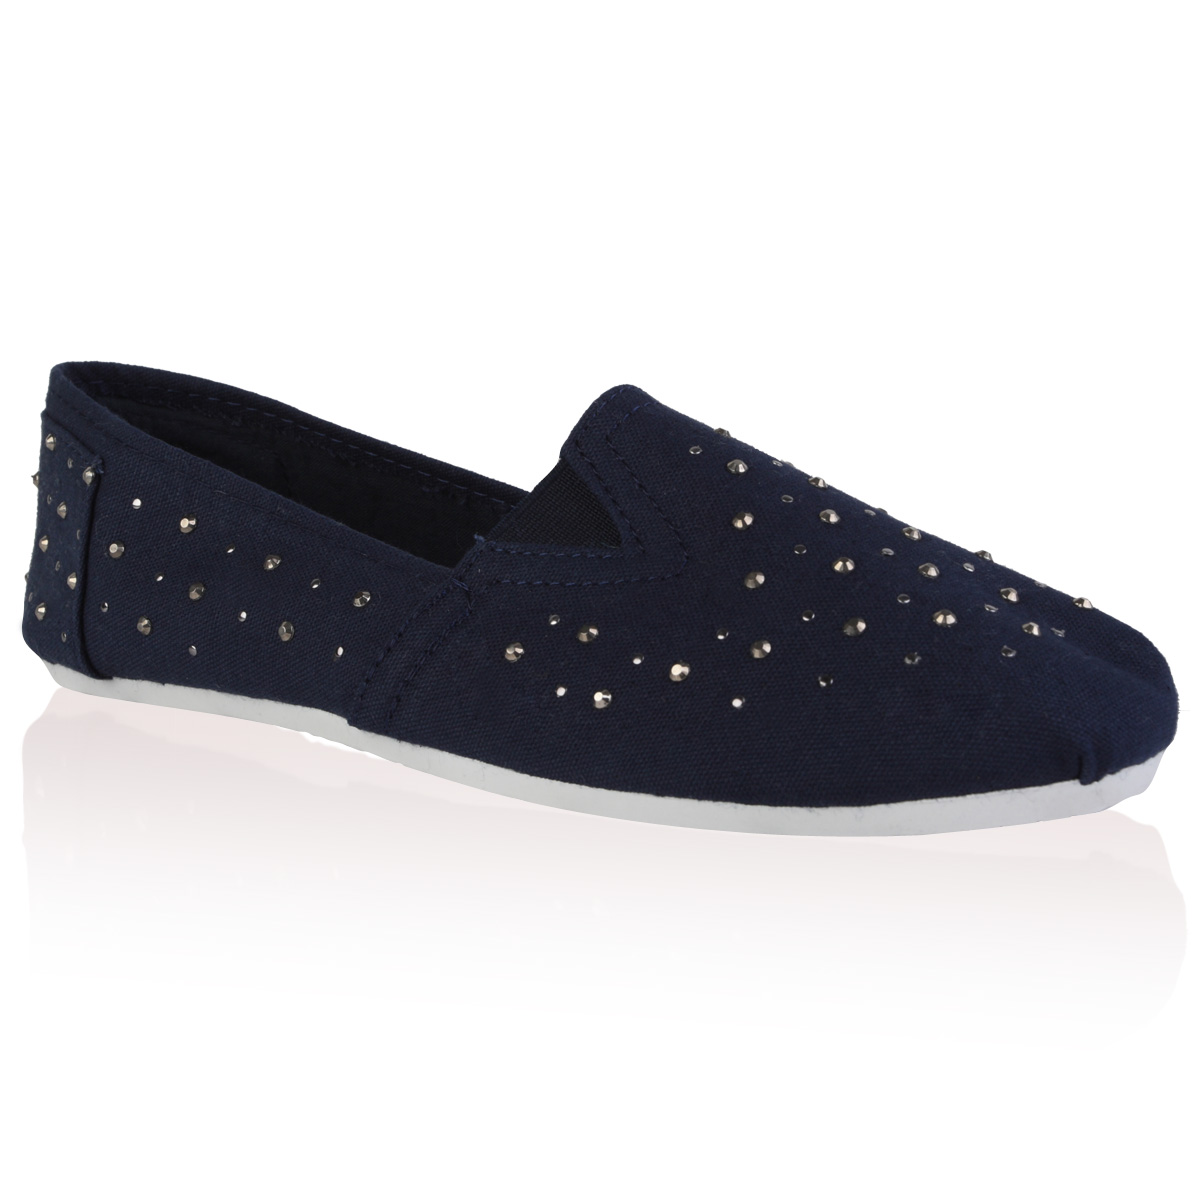 Free shipping BOTH ways on womens navy blue flats, from our vast selection of styles. Fast delivery, and 24/7/ real-person service with a smile. Click or call